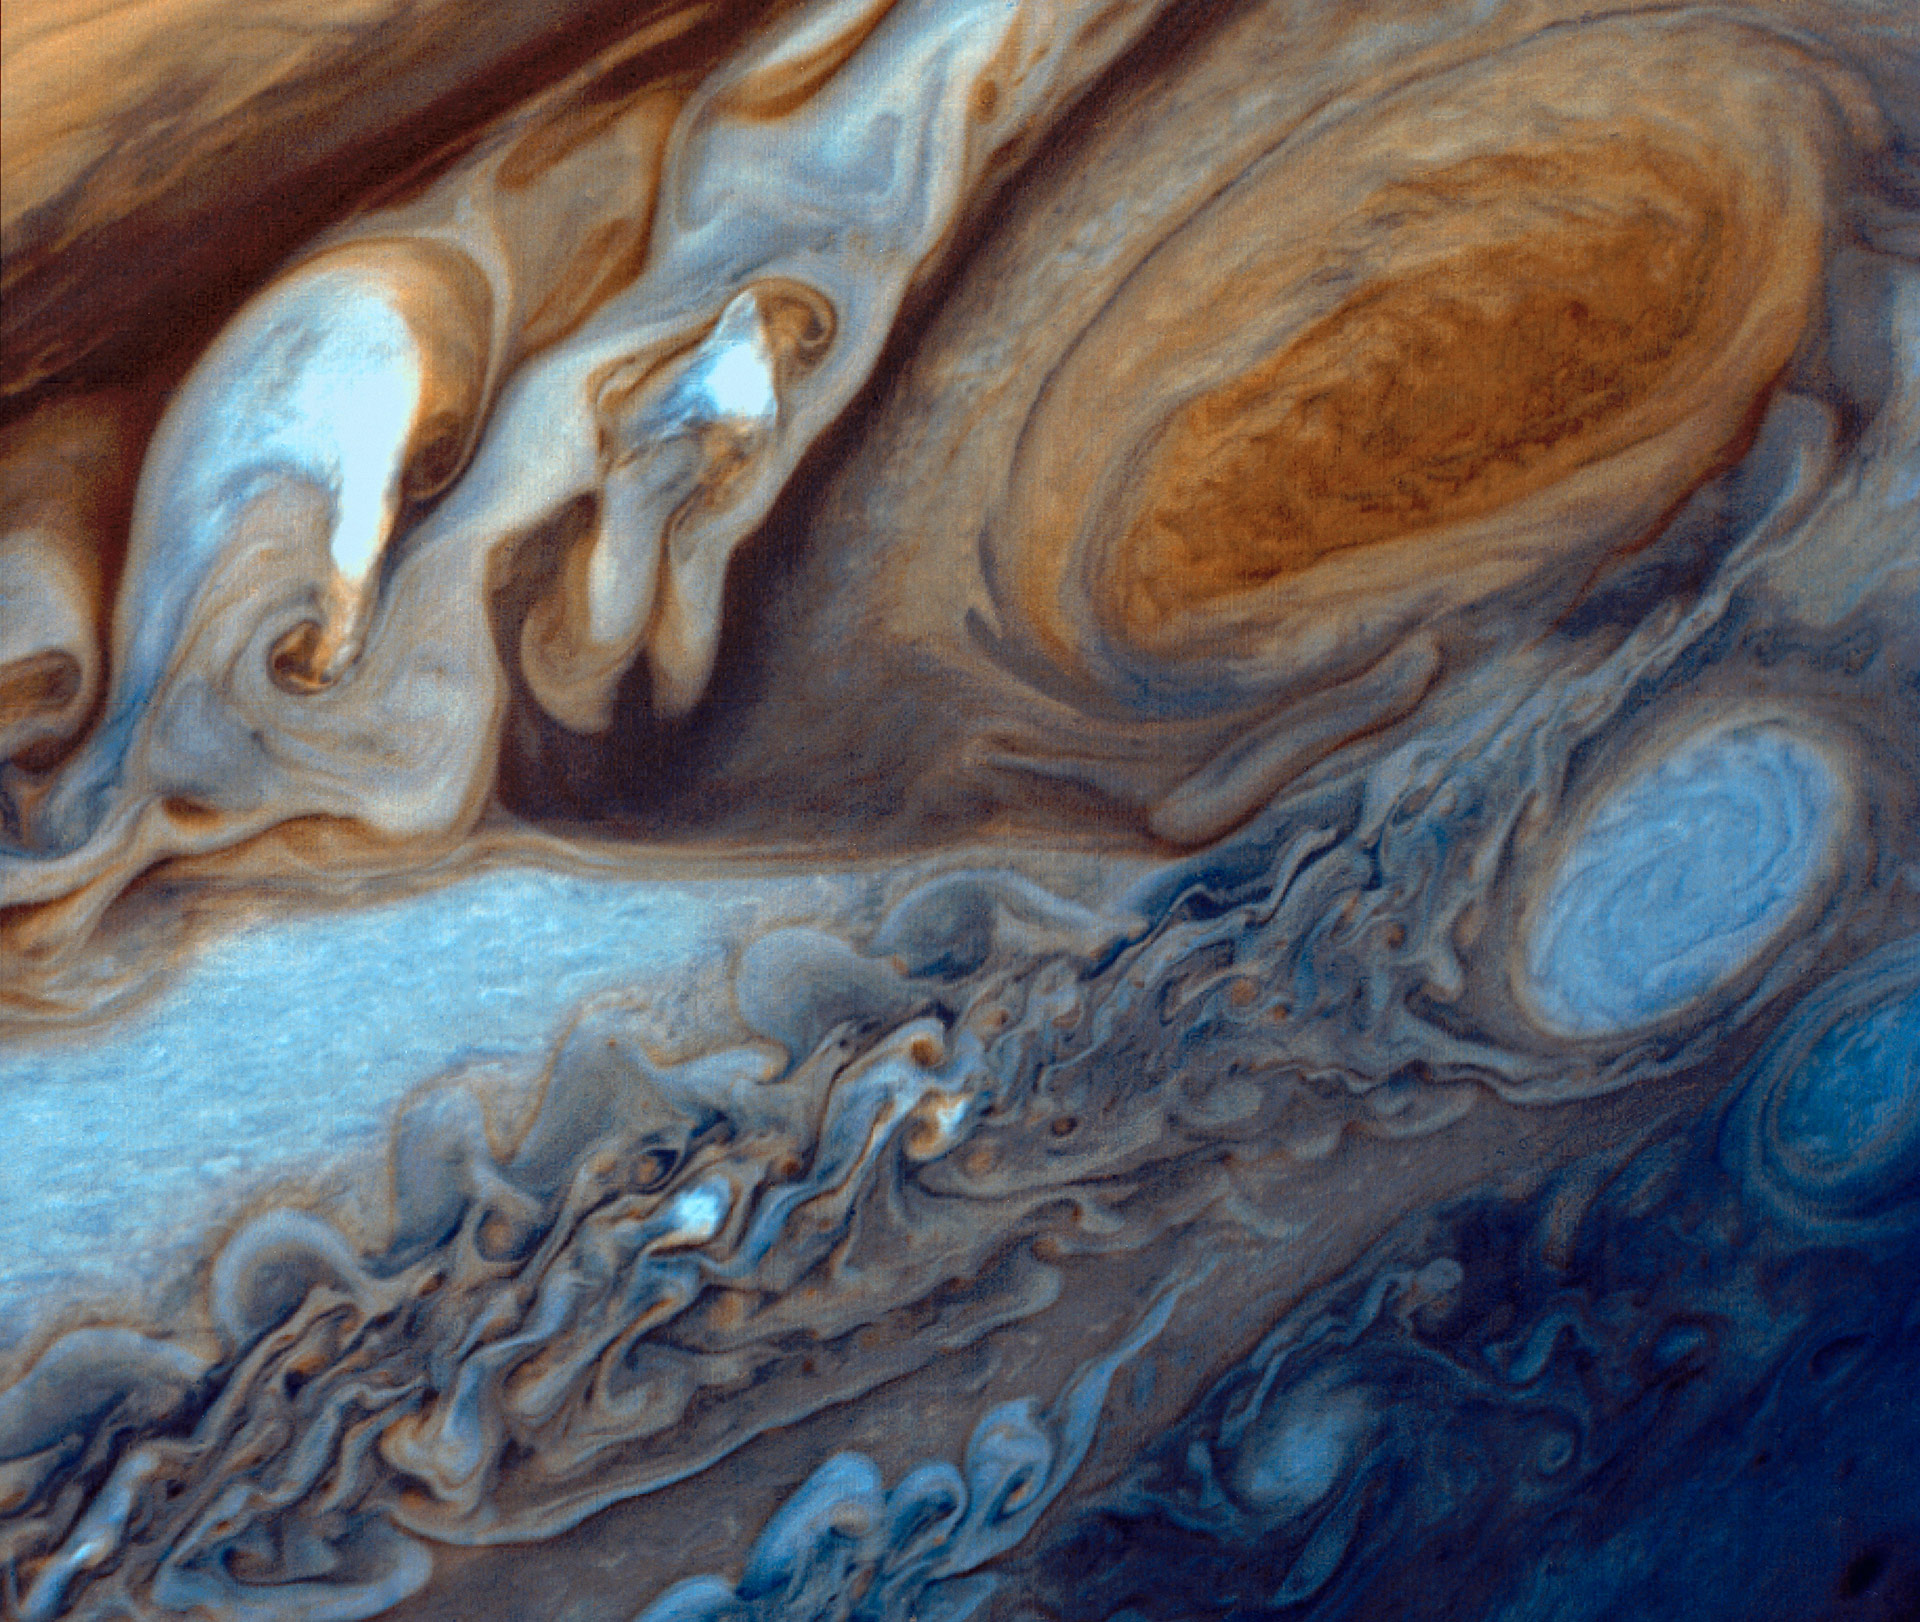 NASA Image of the Day - Jupiter's Great Red Spot Viewed by Voyager I